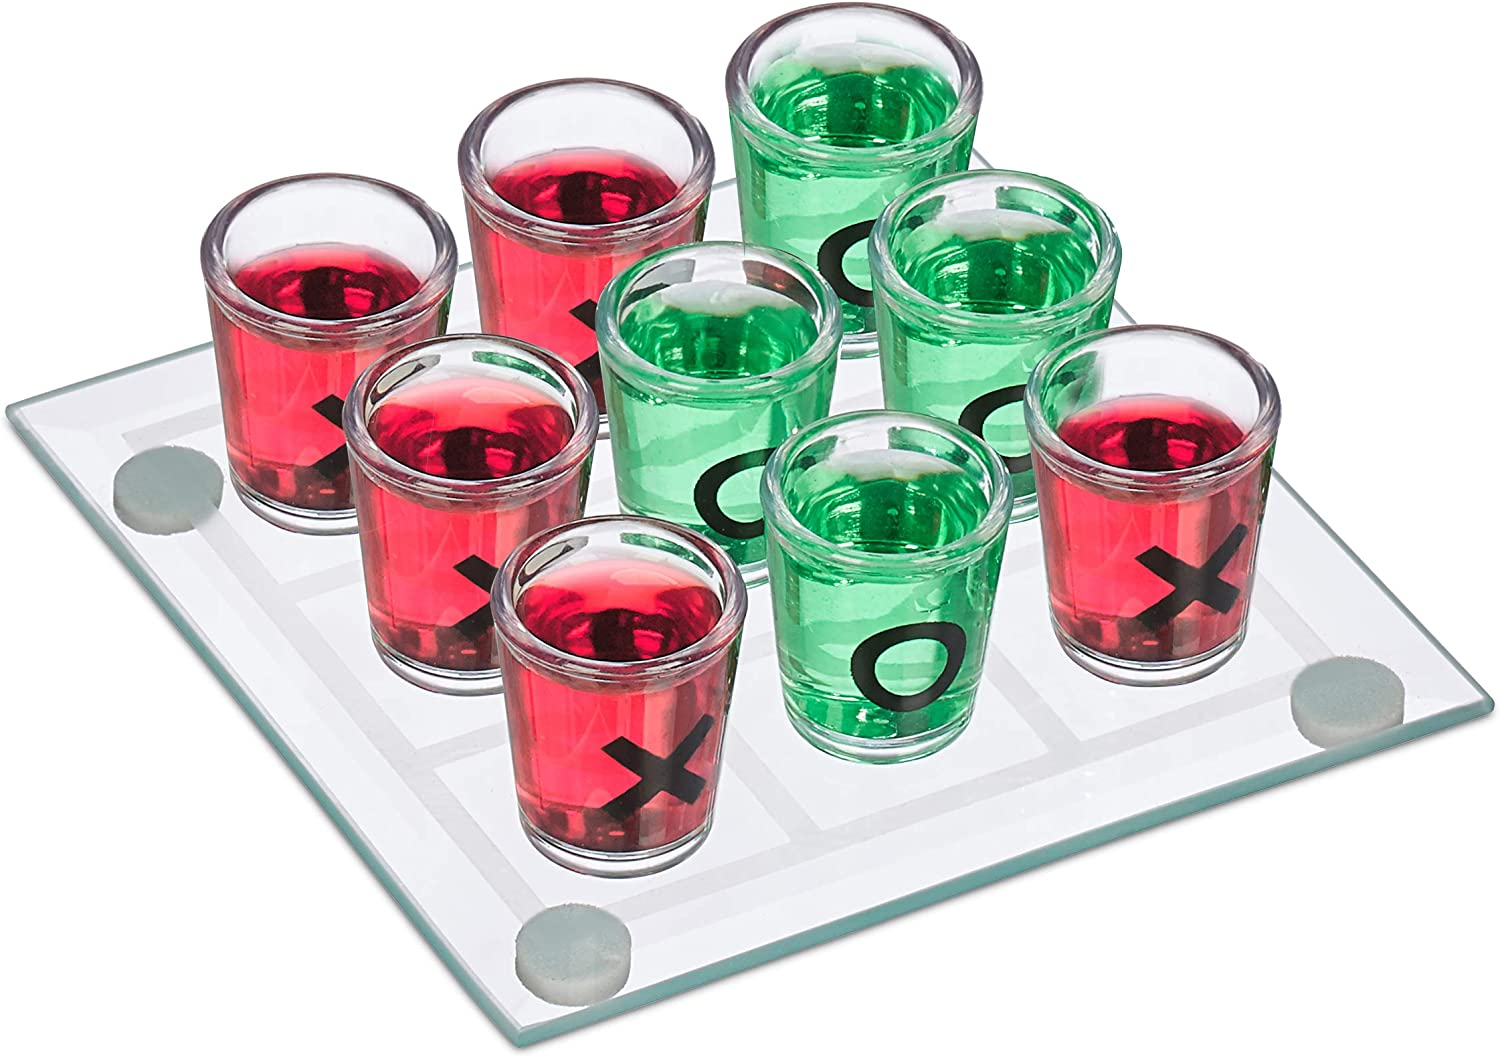 Funny Party Game Set 9 Shot Glasses Relaxdays Tic Tac Toe Drinking Game for Adults Transparent 2 Players